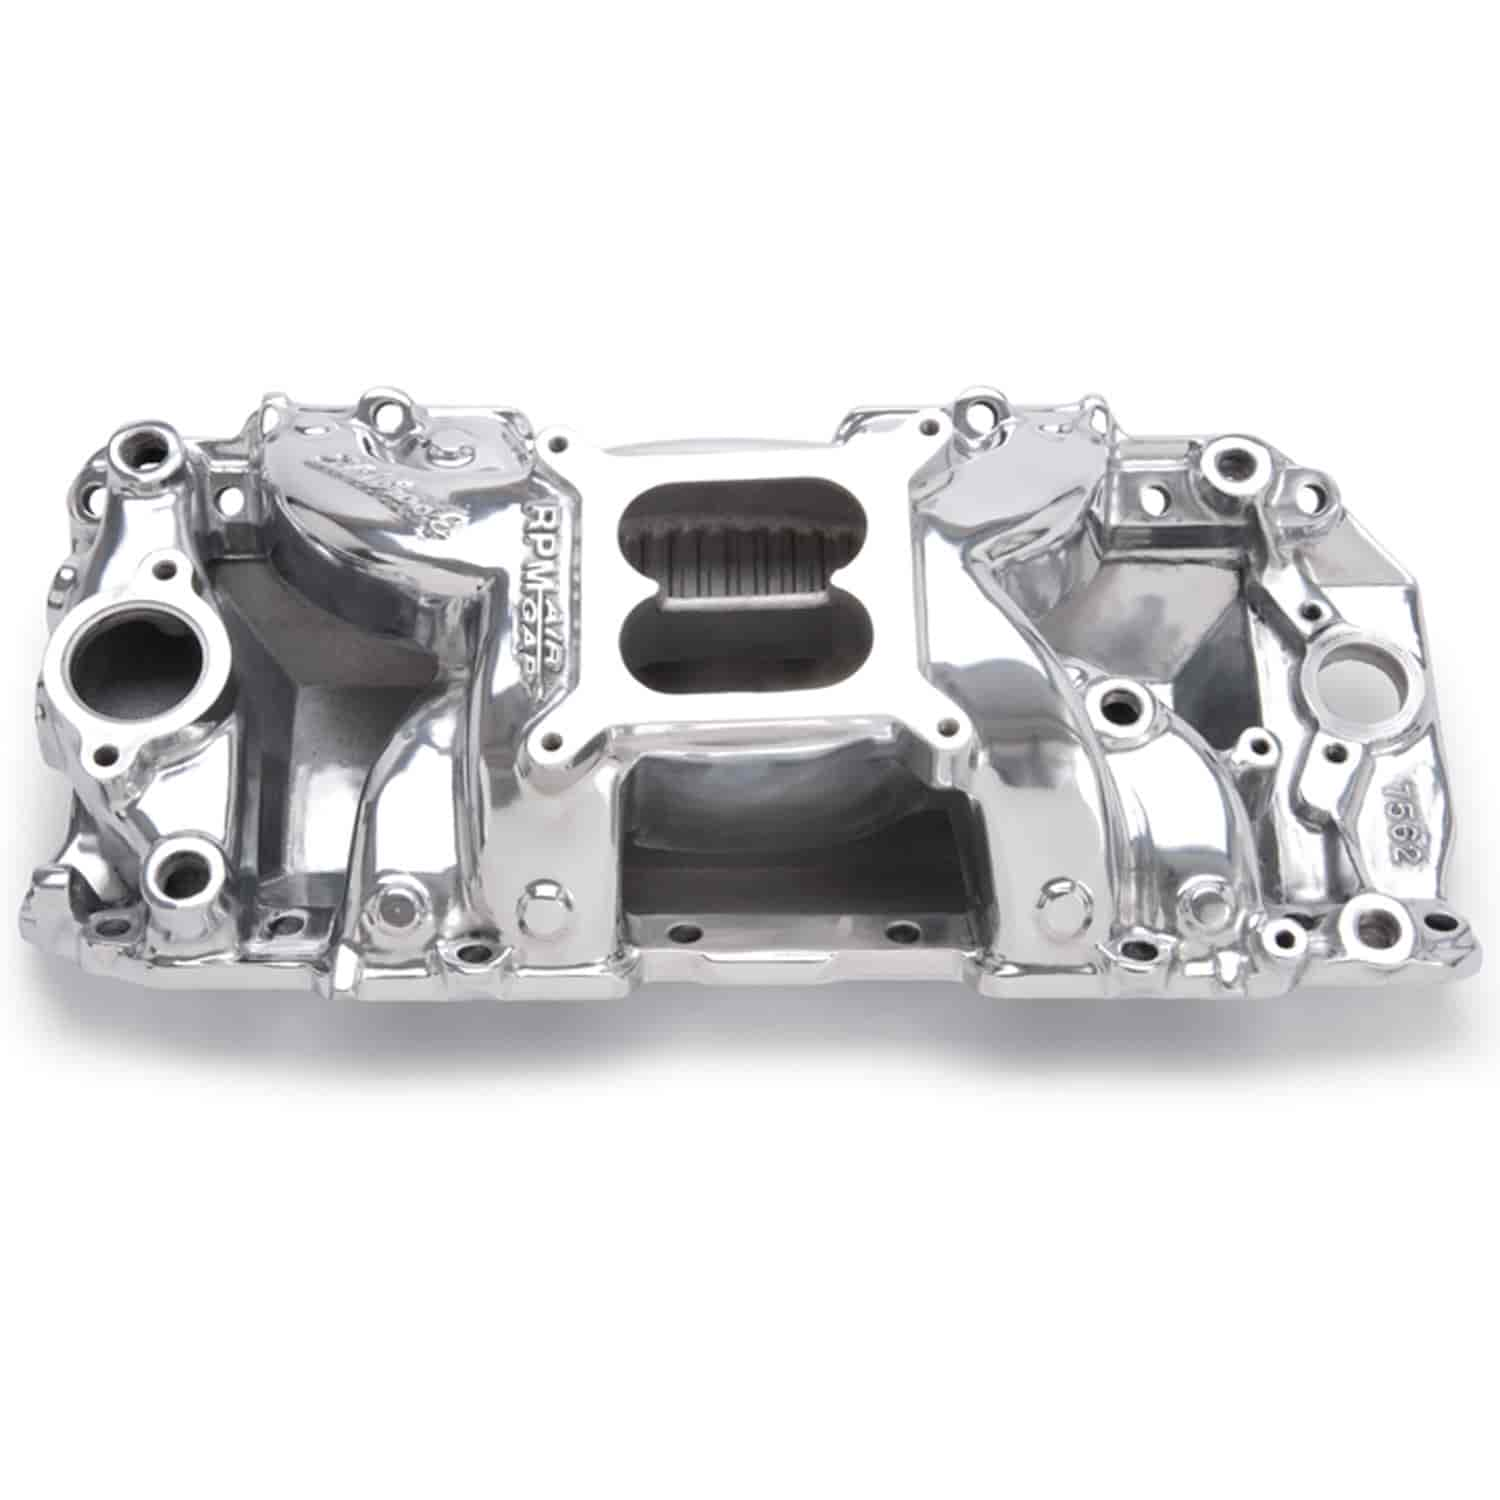 Edelbrock 75621 Rpm Air Gap 2 R Intake Manifold Bb Chevy 396 502 W 196567 Power Steering Pump Corvette Parts And Accessories